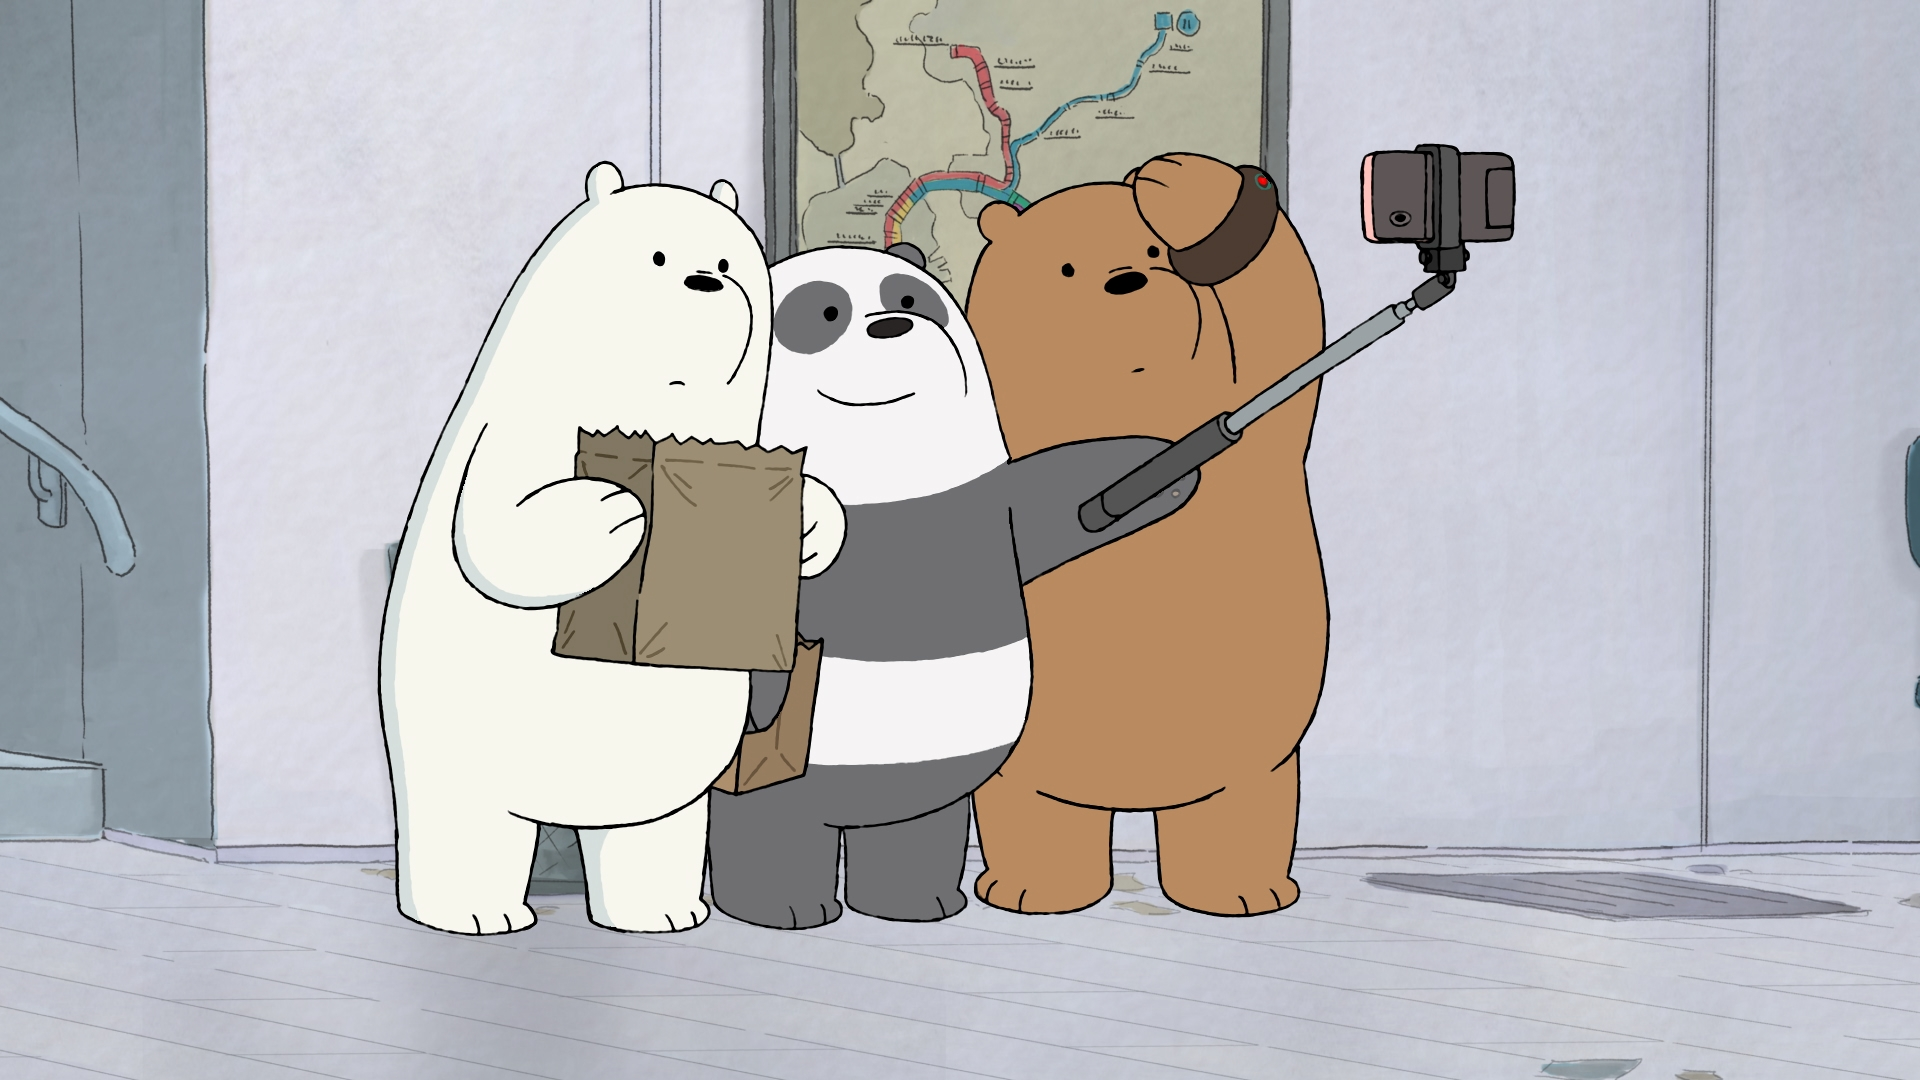 We Bare Bears Getting Tv Movie Treatment Potential Spinoff Deadline